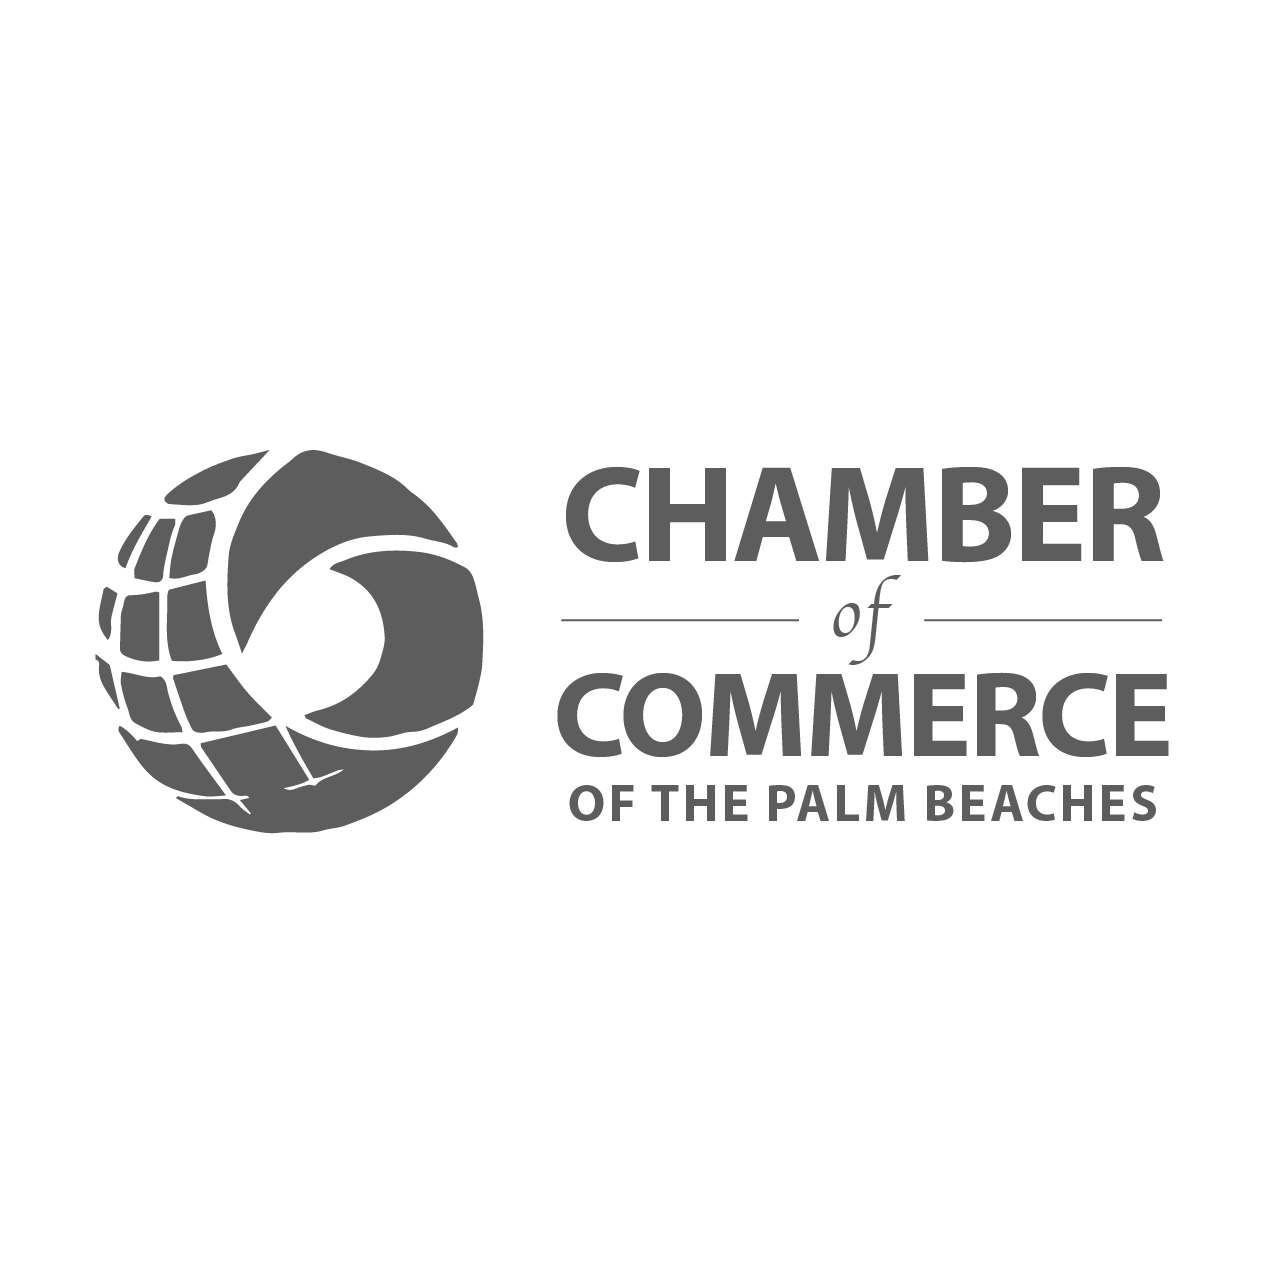 chamber of commerce palm beach logo